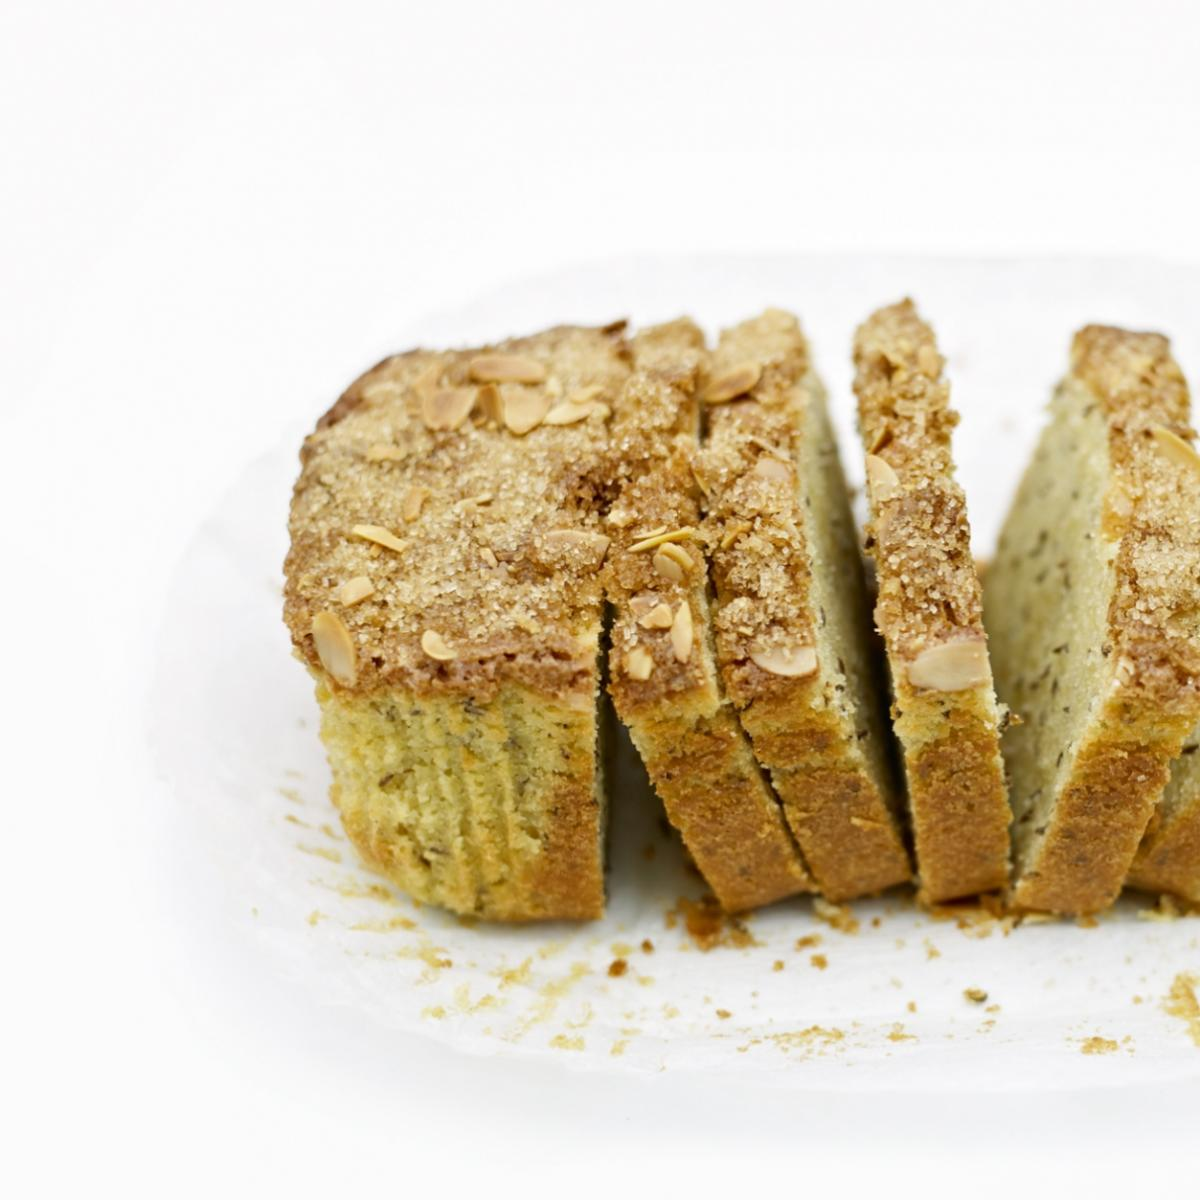 A picture of Delia's Caraway Seed Cake recipe